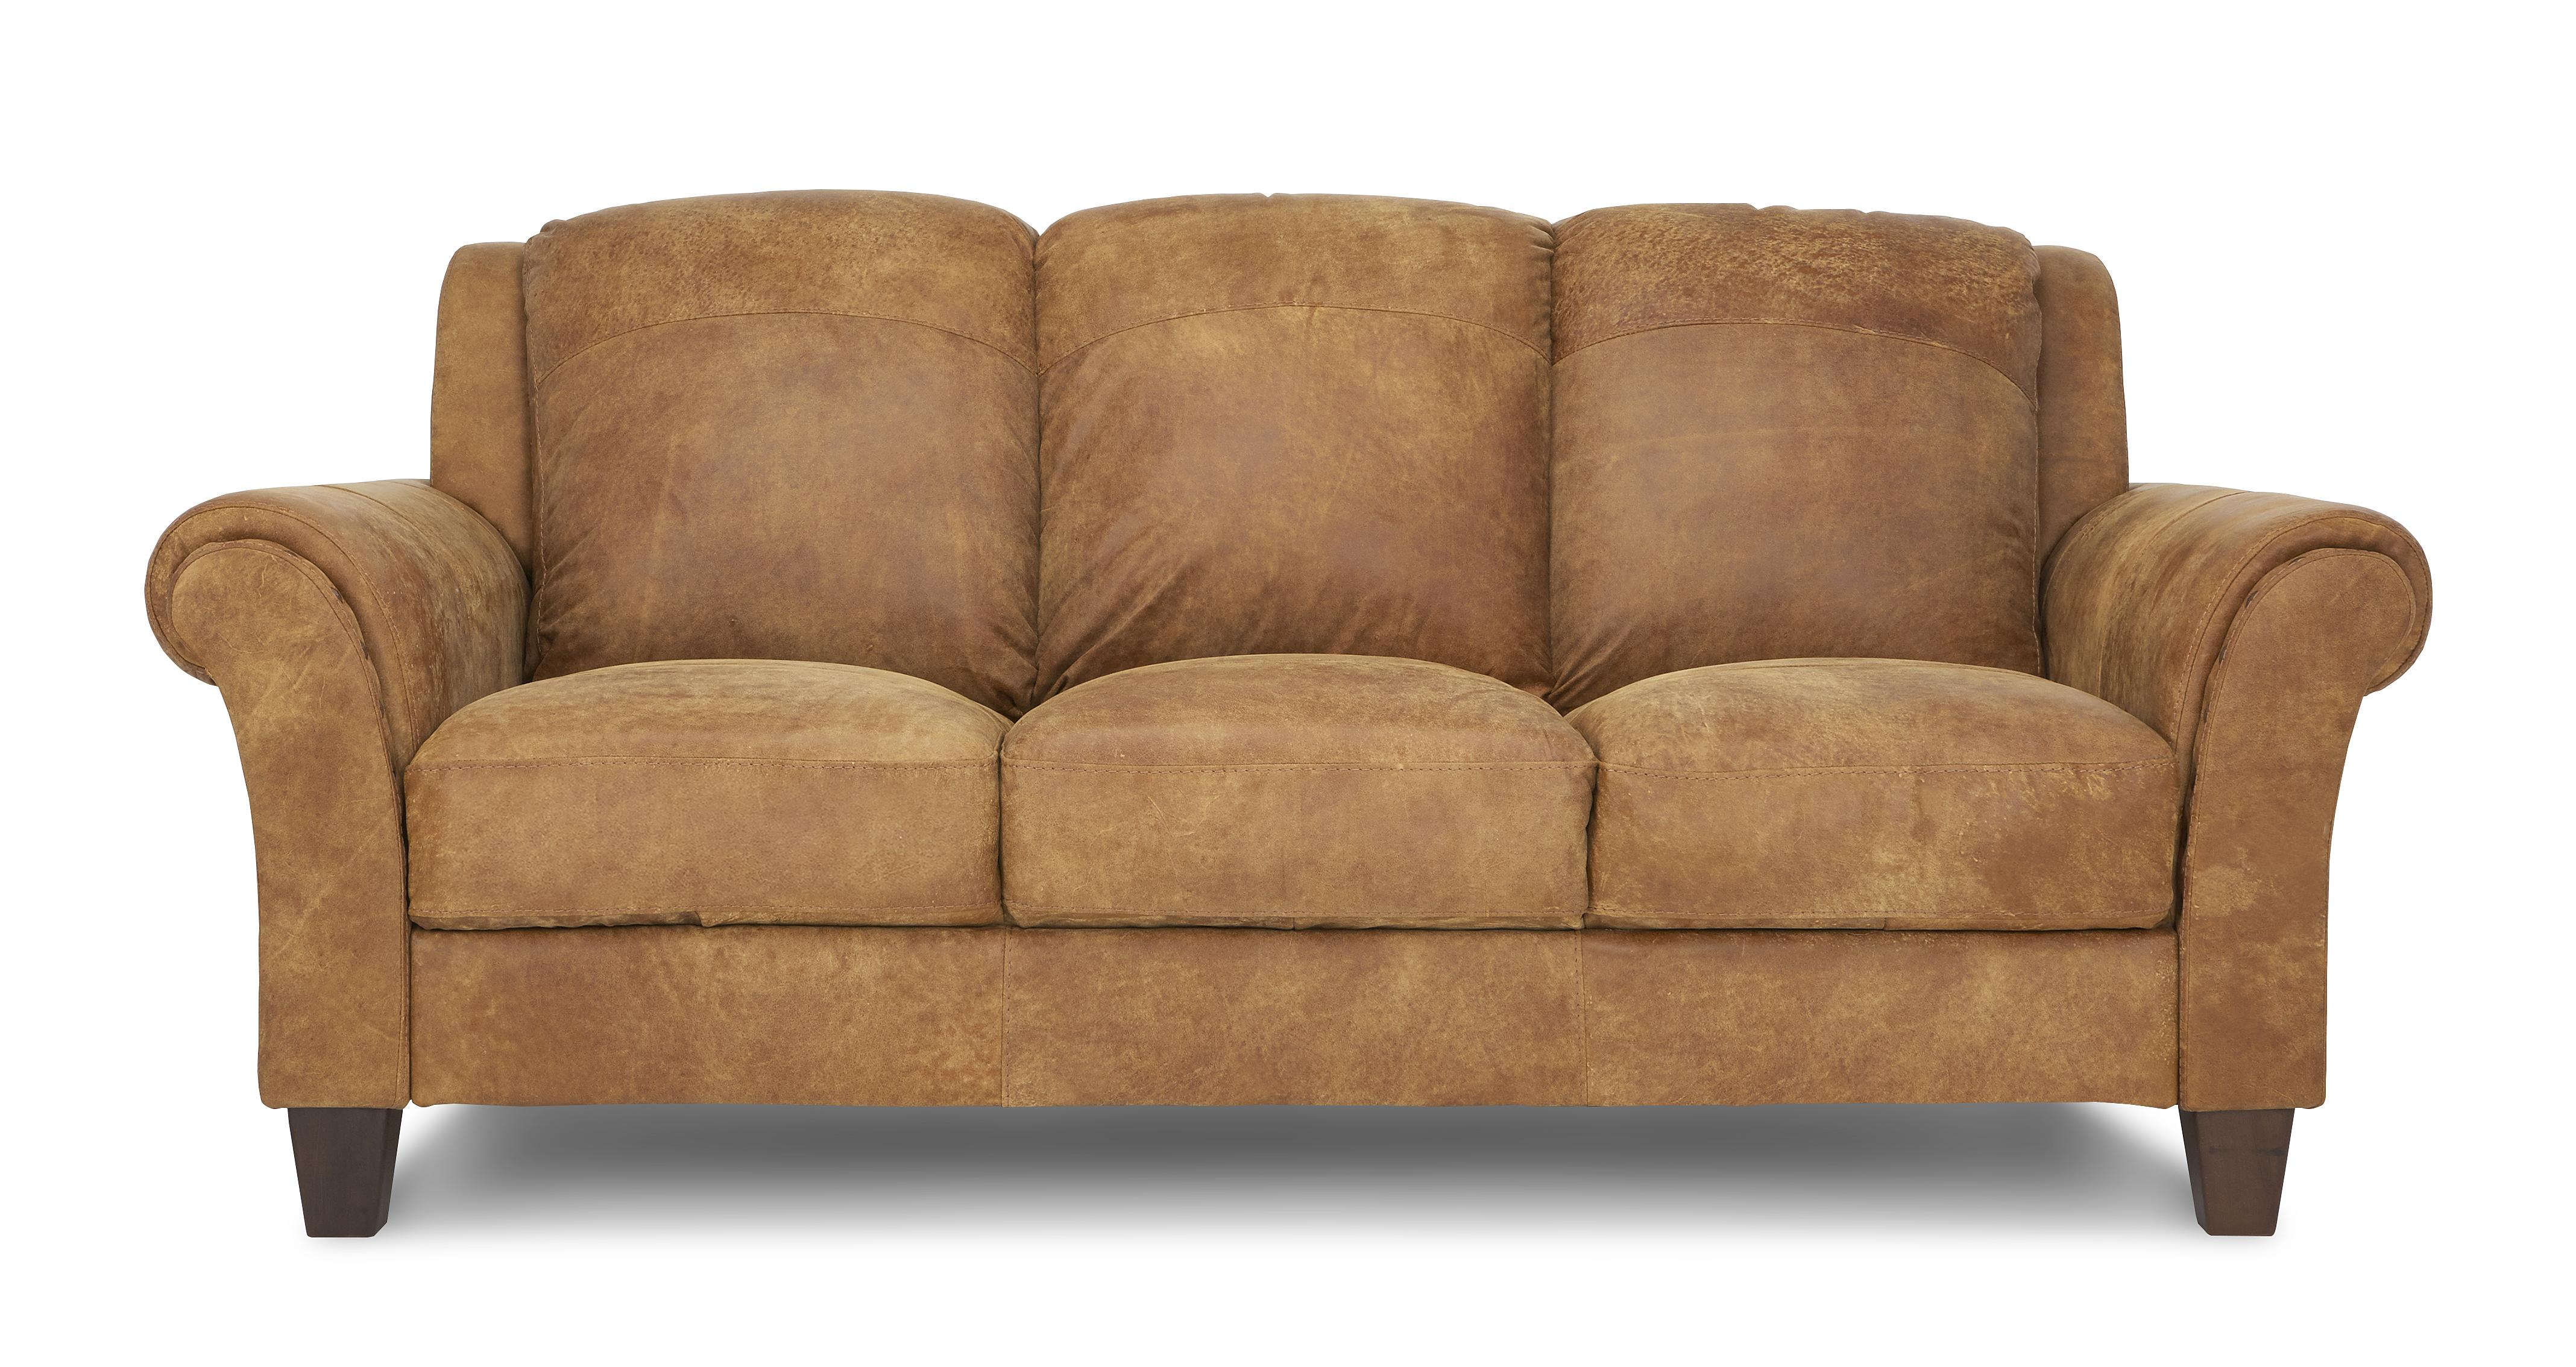 Dfs Peyton Ranch Leather Sofa Set Inc 3 Seater 2 Seater